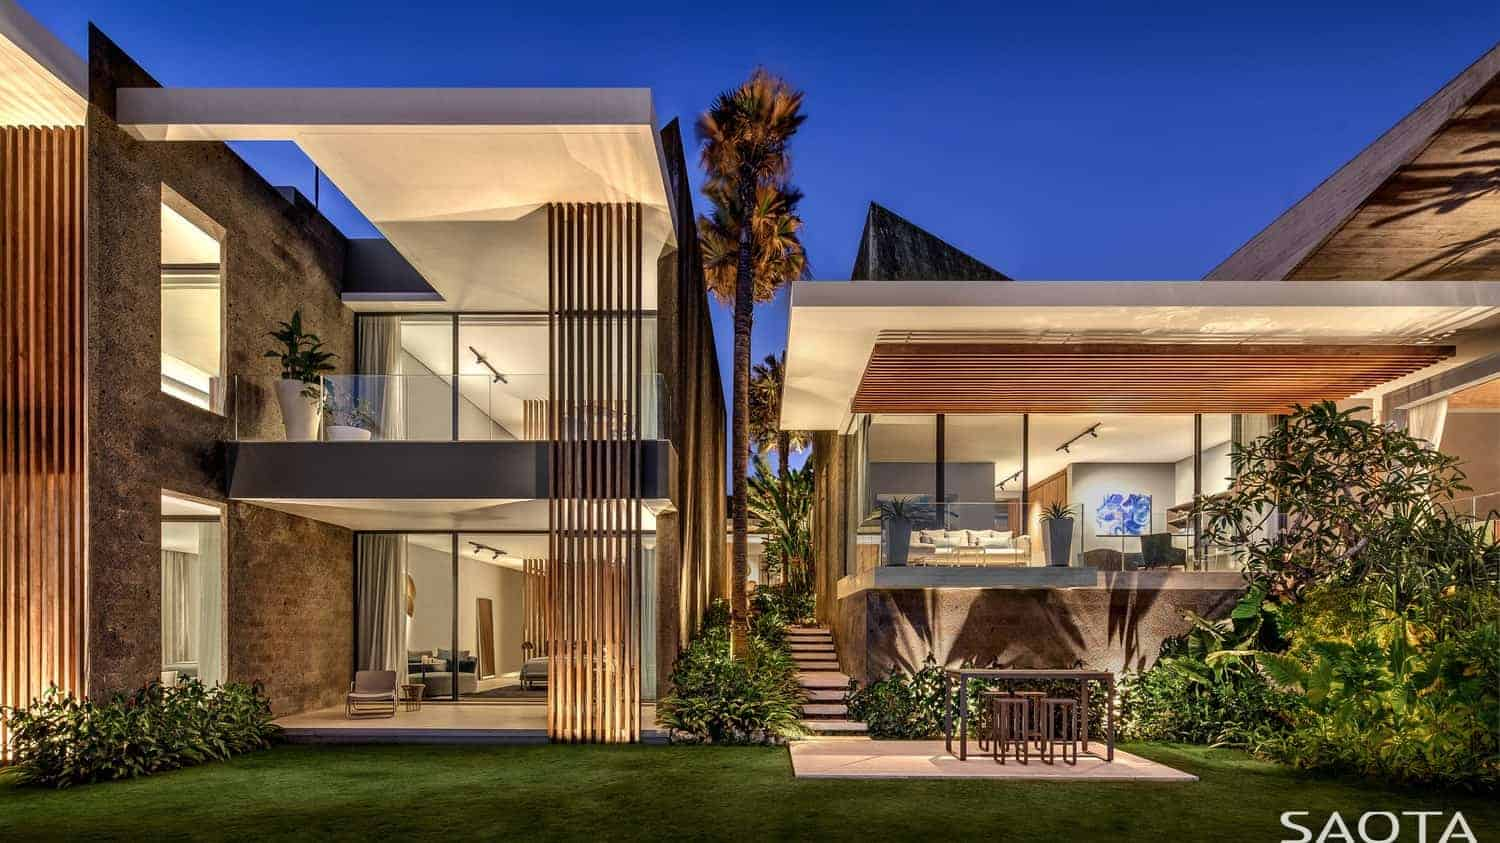 A huge contemporary house with a beautiful lawn and garden areas and has a nice interior as well.